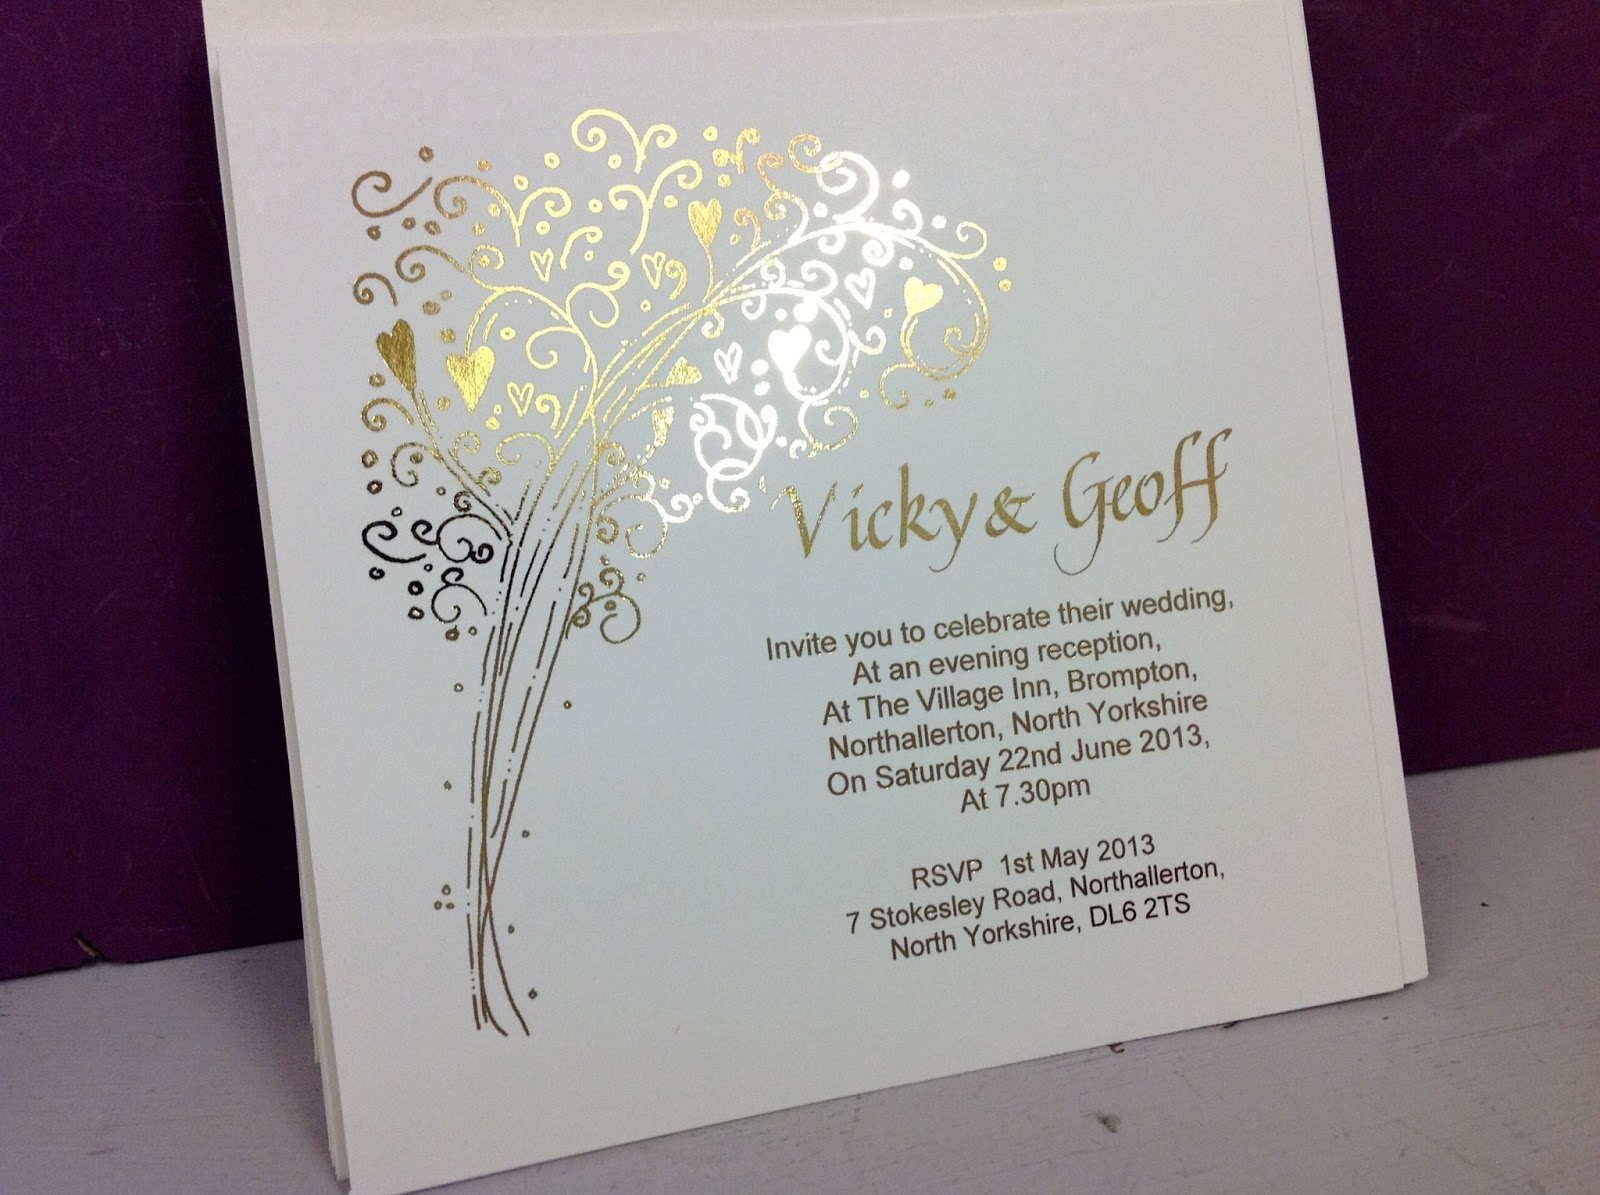 Personalised Wedding Evening Invitations: Inspired By Script: Vicky & Geoff